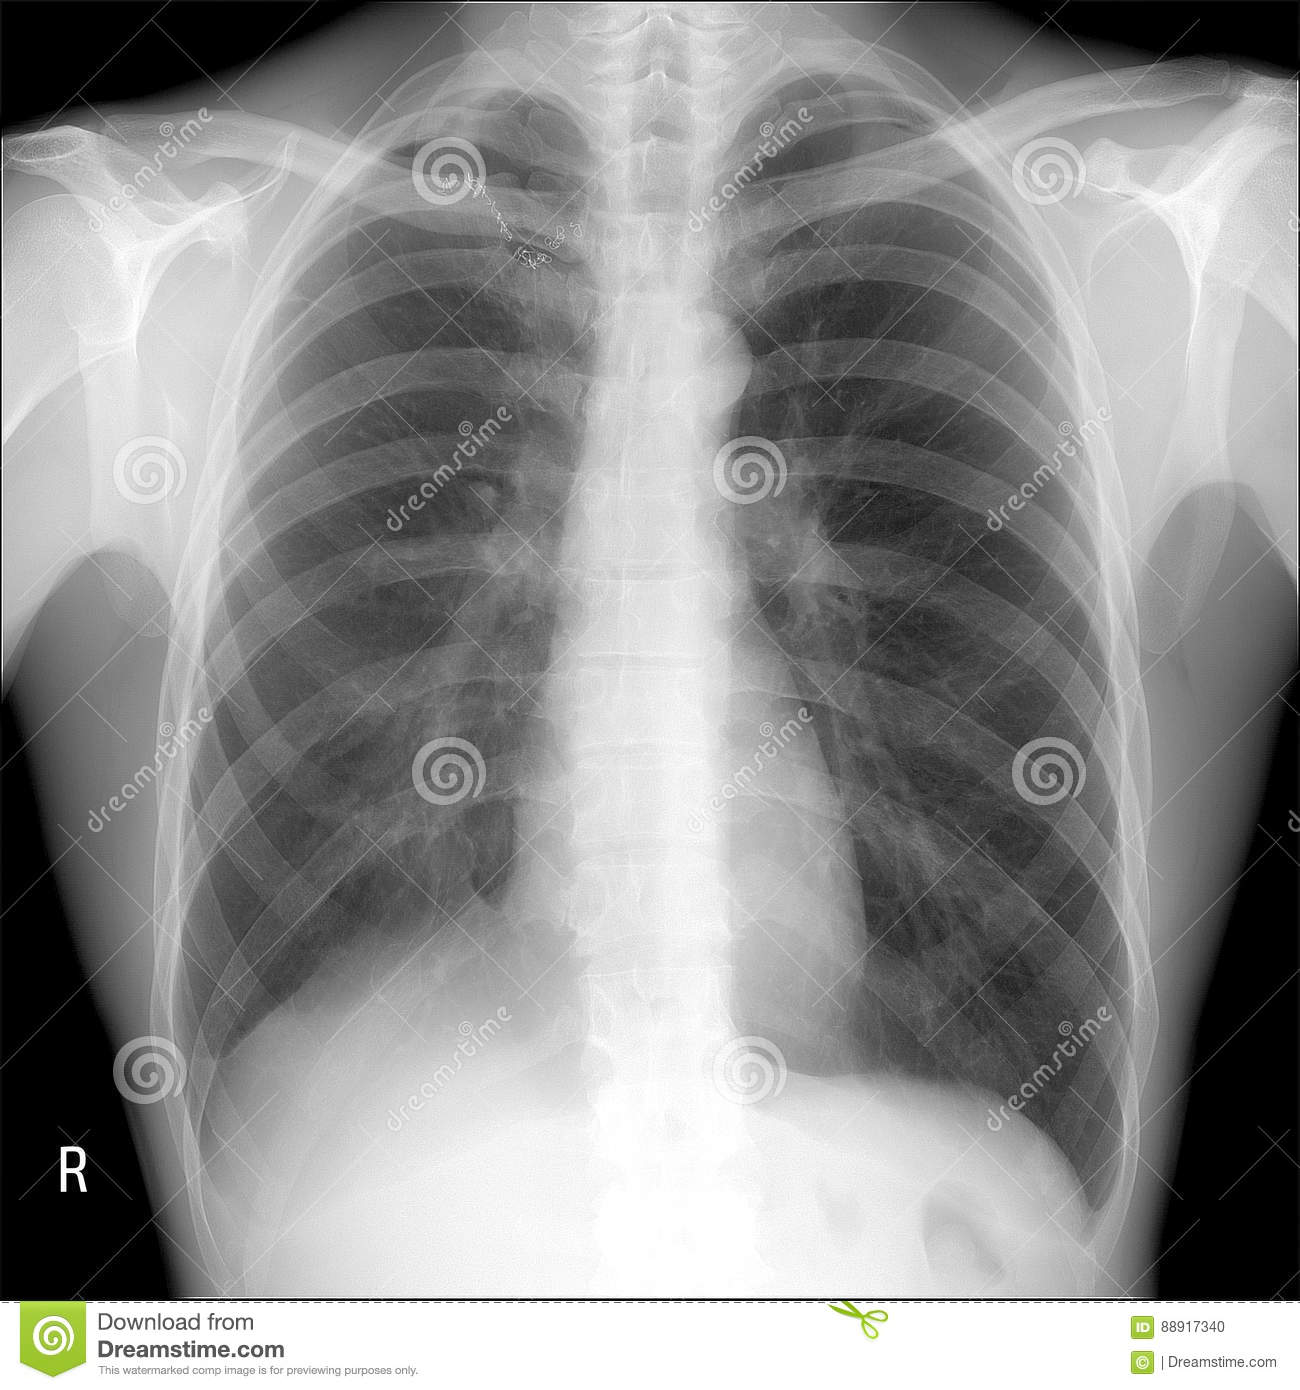 X-ray lungs: lobectomy right lung post tuberculosis